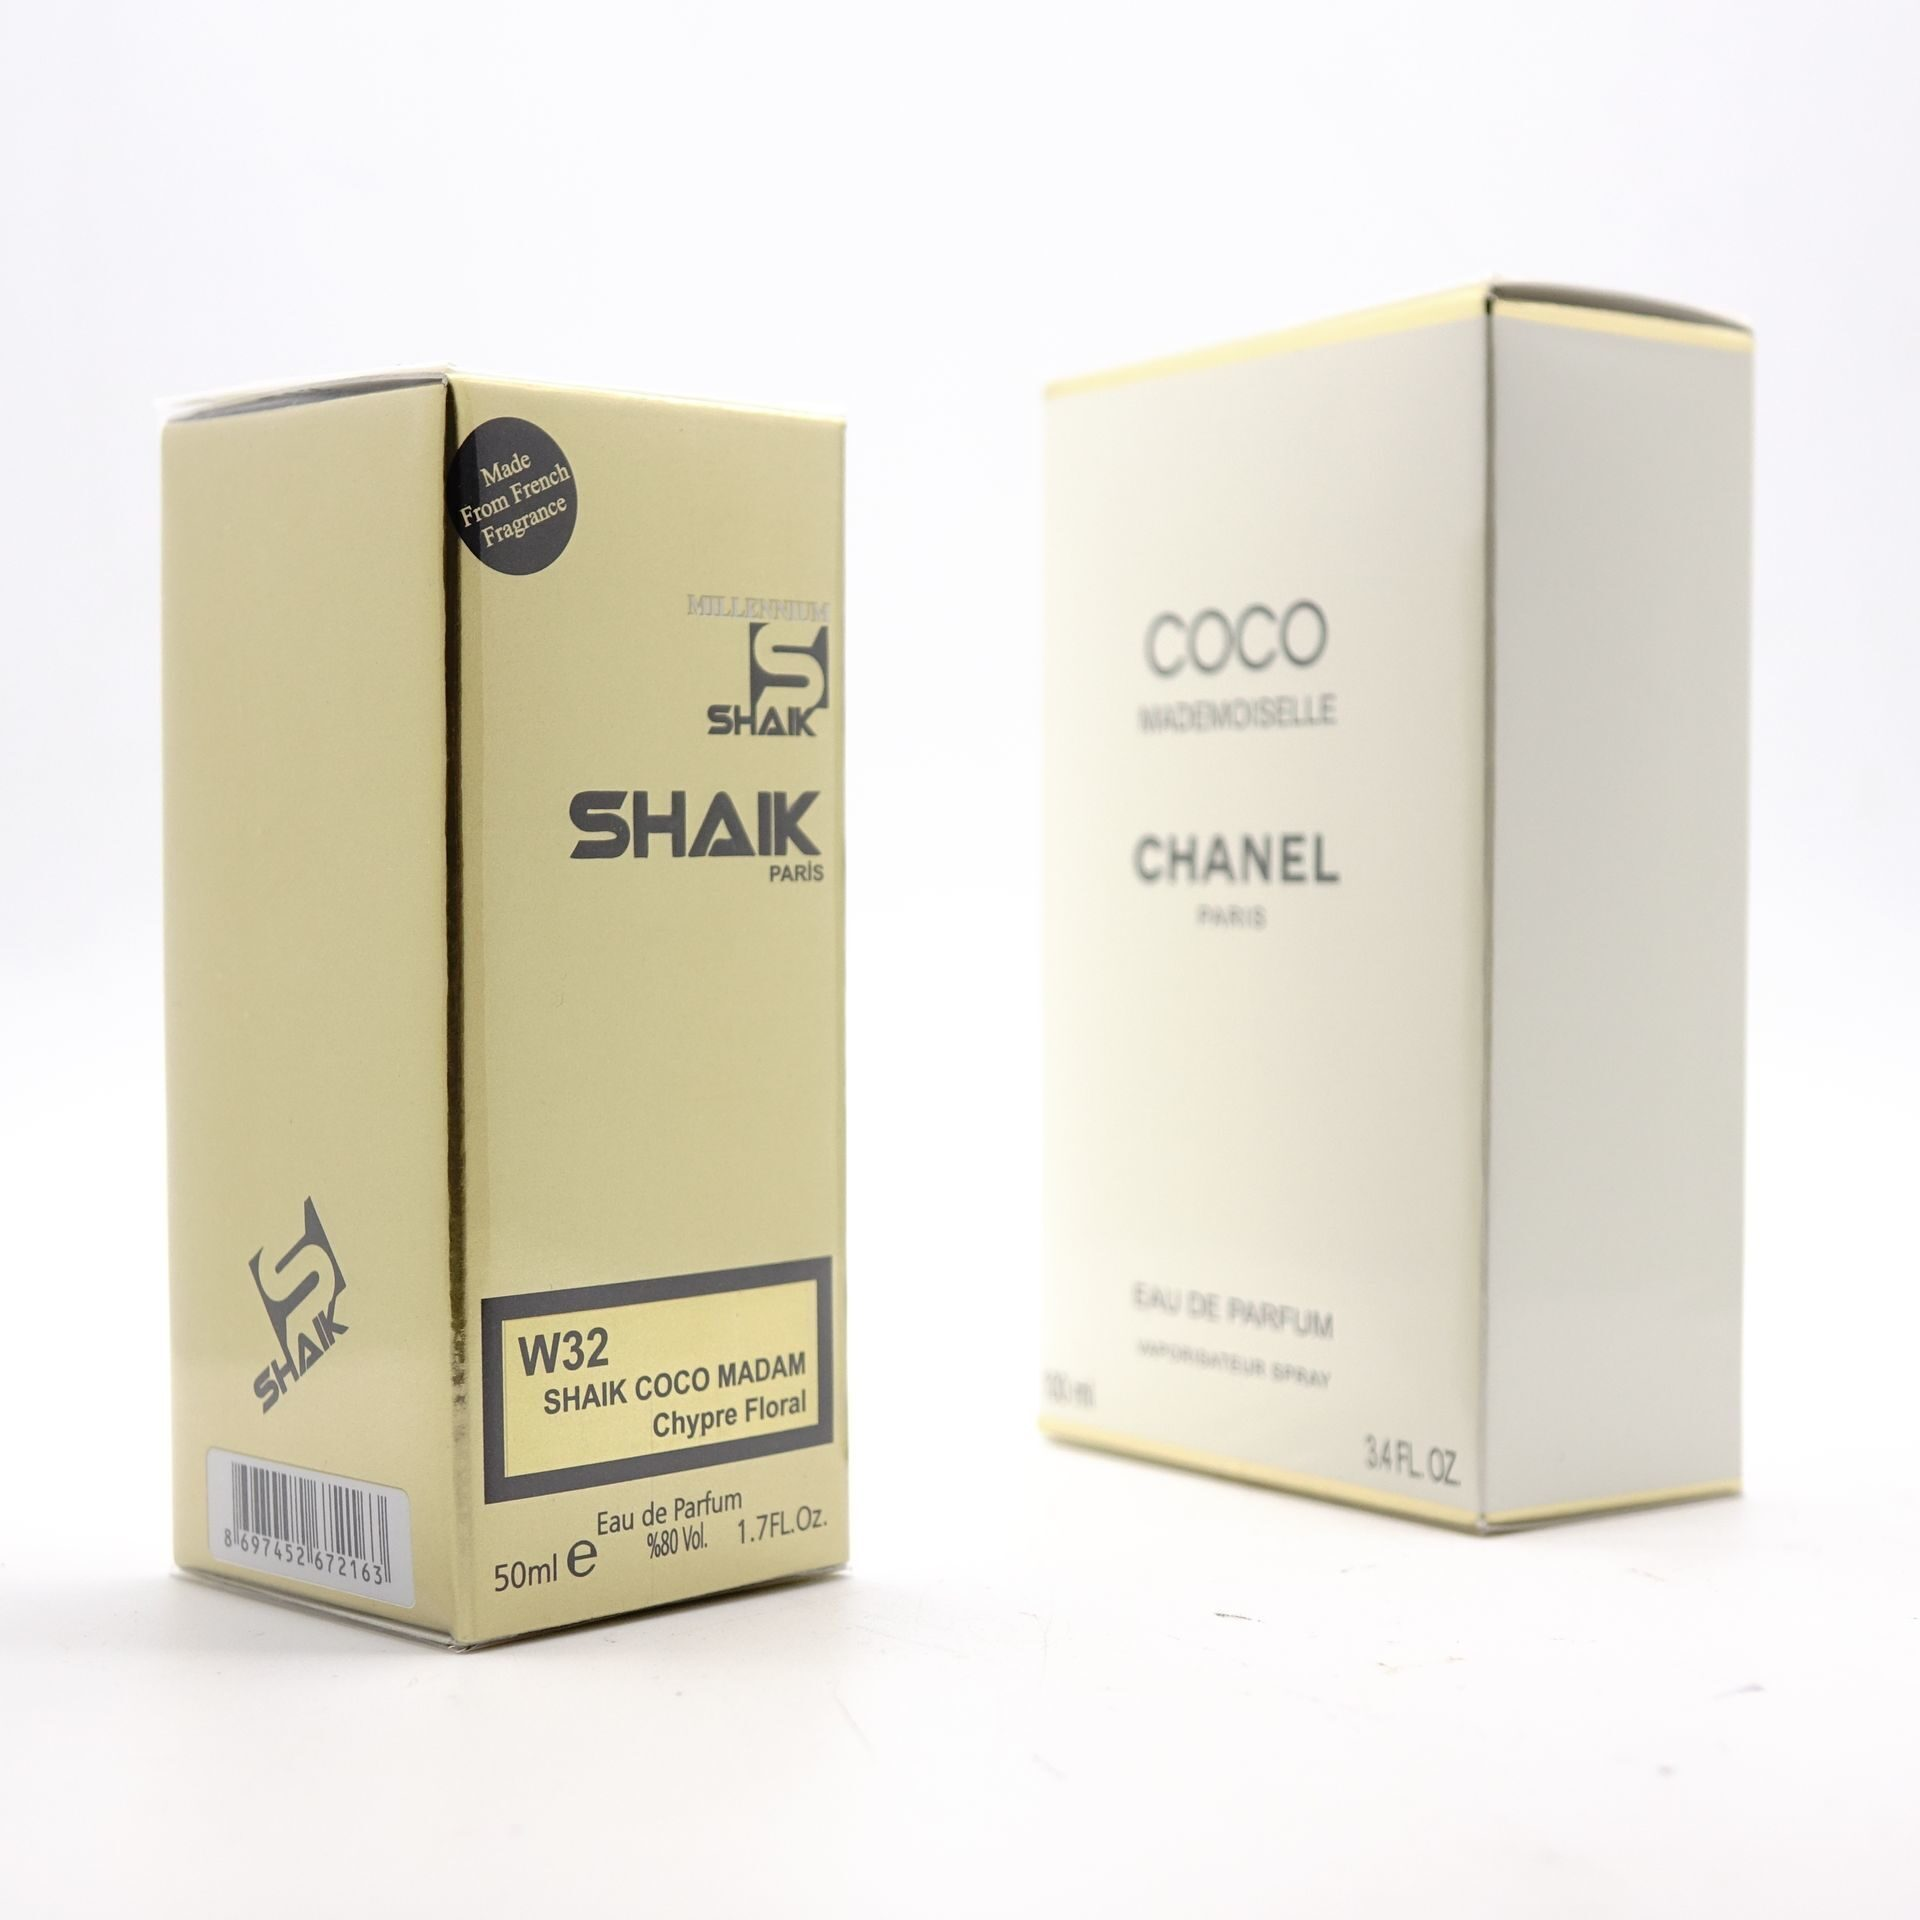 SHAIK W 32 (CHANEL COCO MADEMOISELLE FOR WOMEN) 50ml